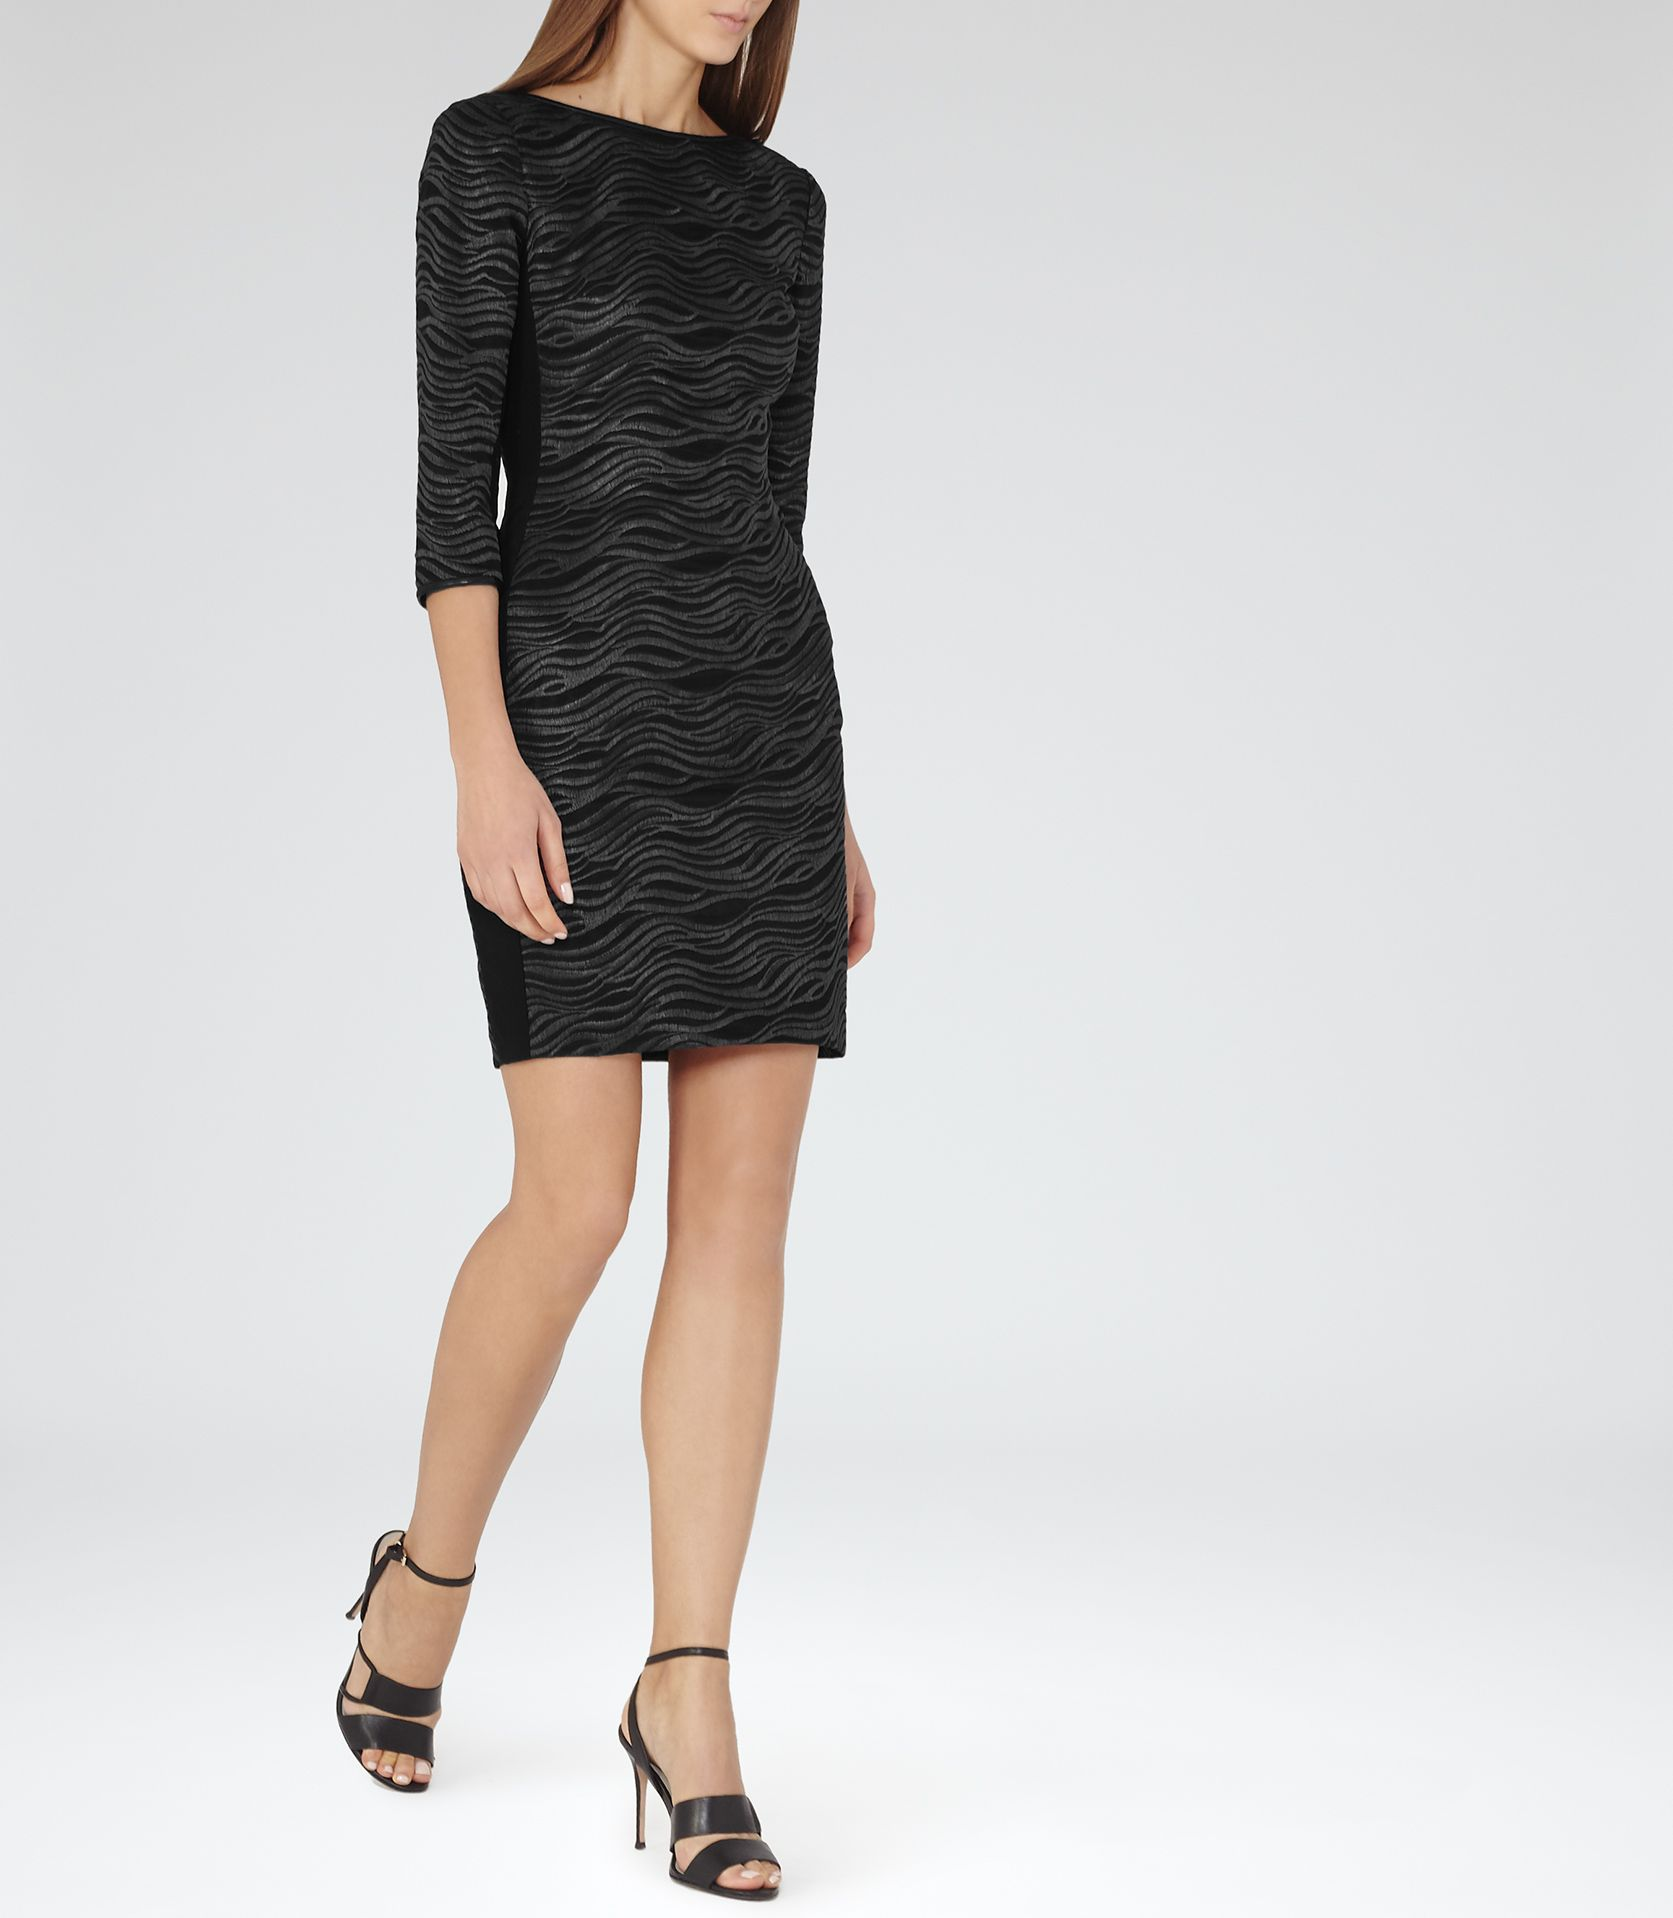 2ee4bfd1ad Womens Pewter/black Bonded Lace Dress - Reiss Lennox   i like ...